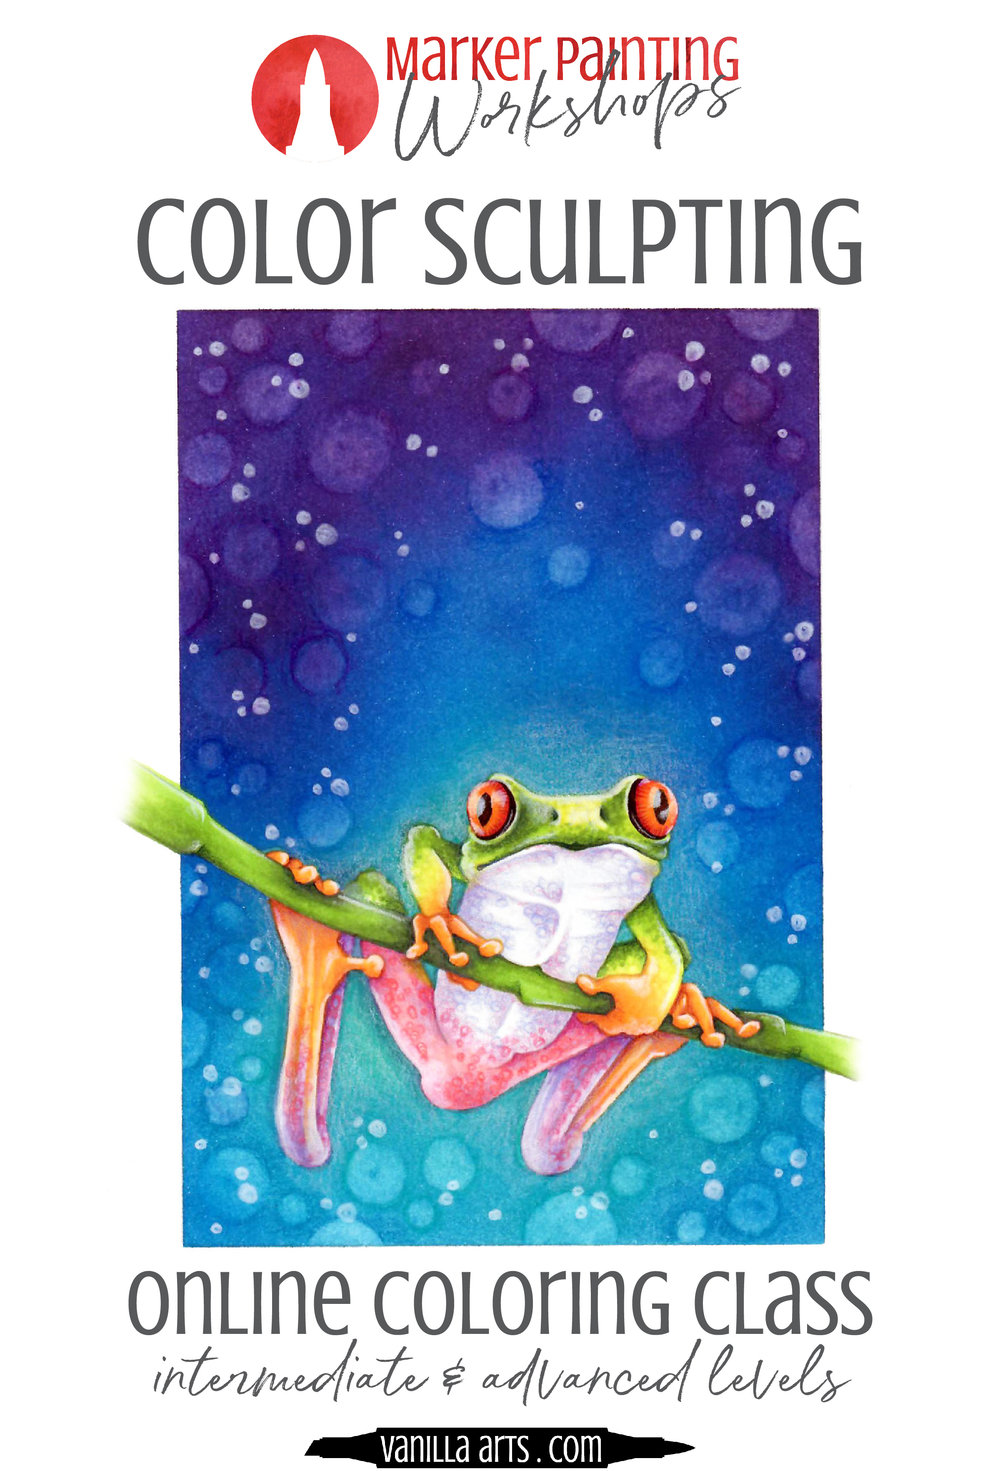 "Marker Painting Workshops. Learn to add realism and artistry to your Copic Marker or colored pencil adult coloring projects. ""Tree Frog"" teaches the color sculpting process to maximize realism. 